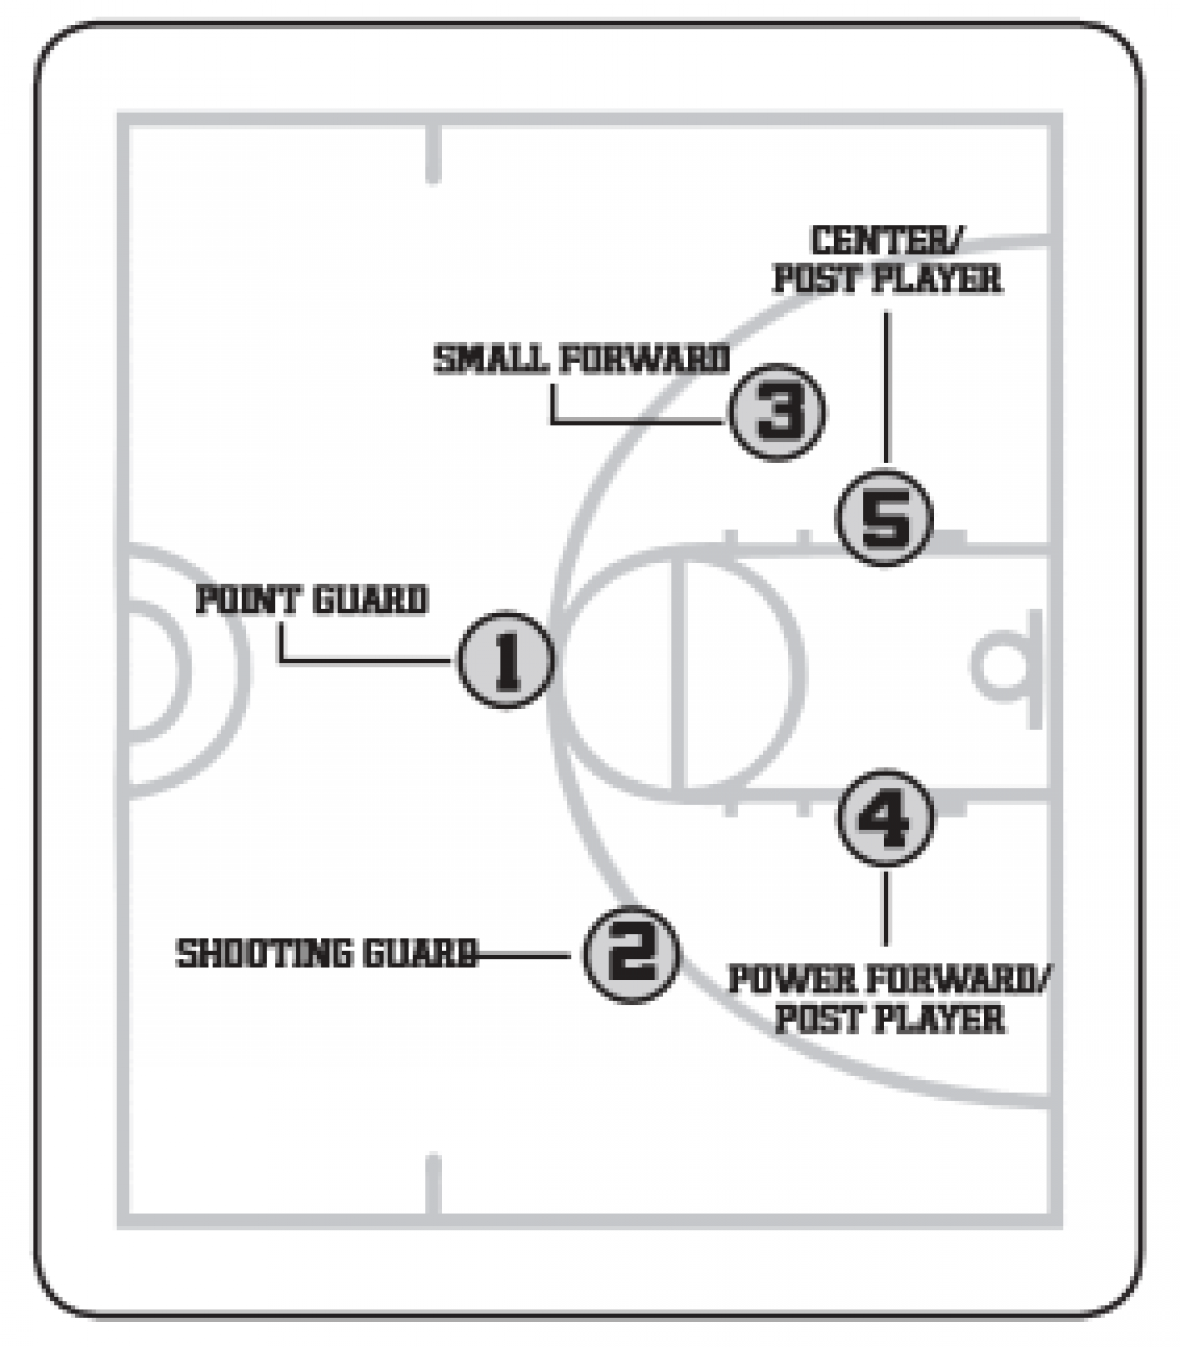 basketball positions   amherst youth basketballpoint guard  player    operates around the perimeter  calling plays and directing the offense  the point guard should be skilled at ball handling and